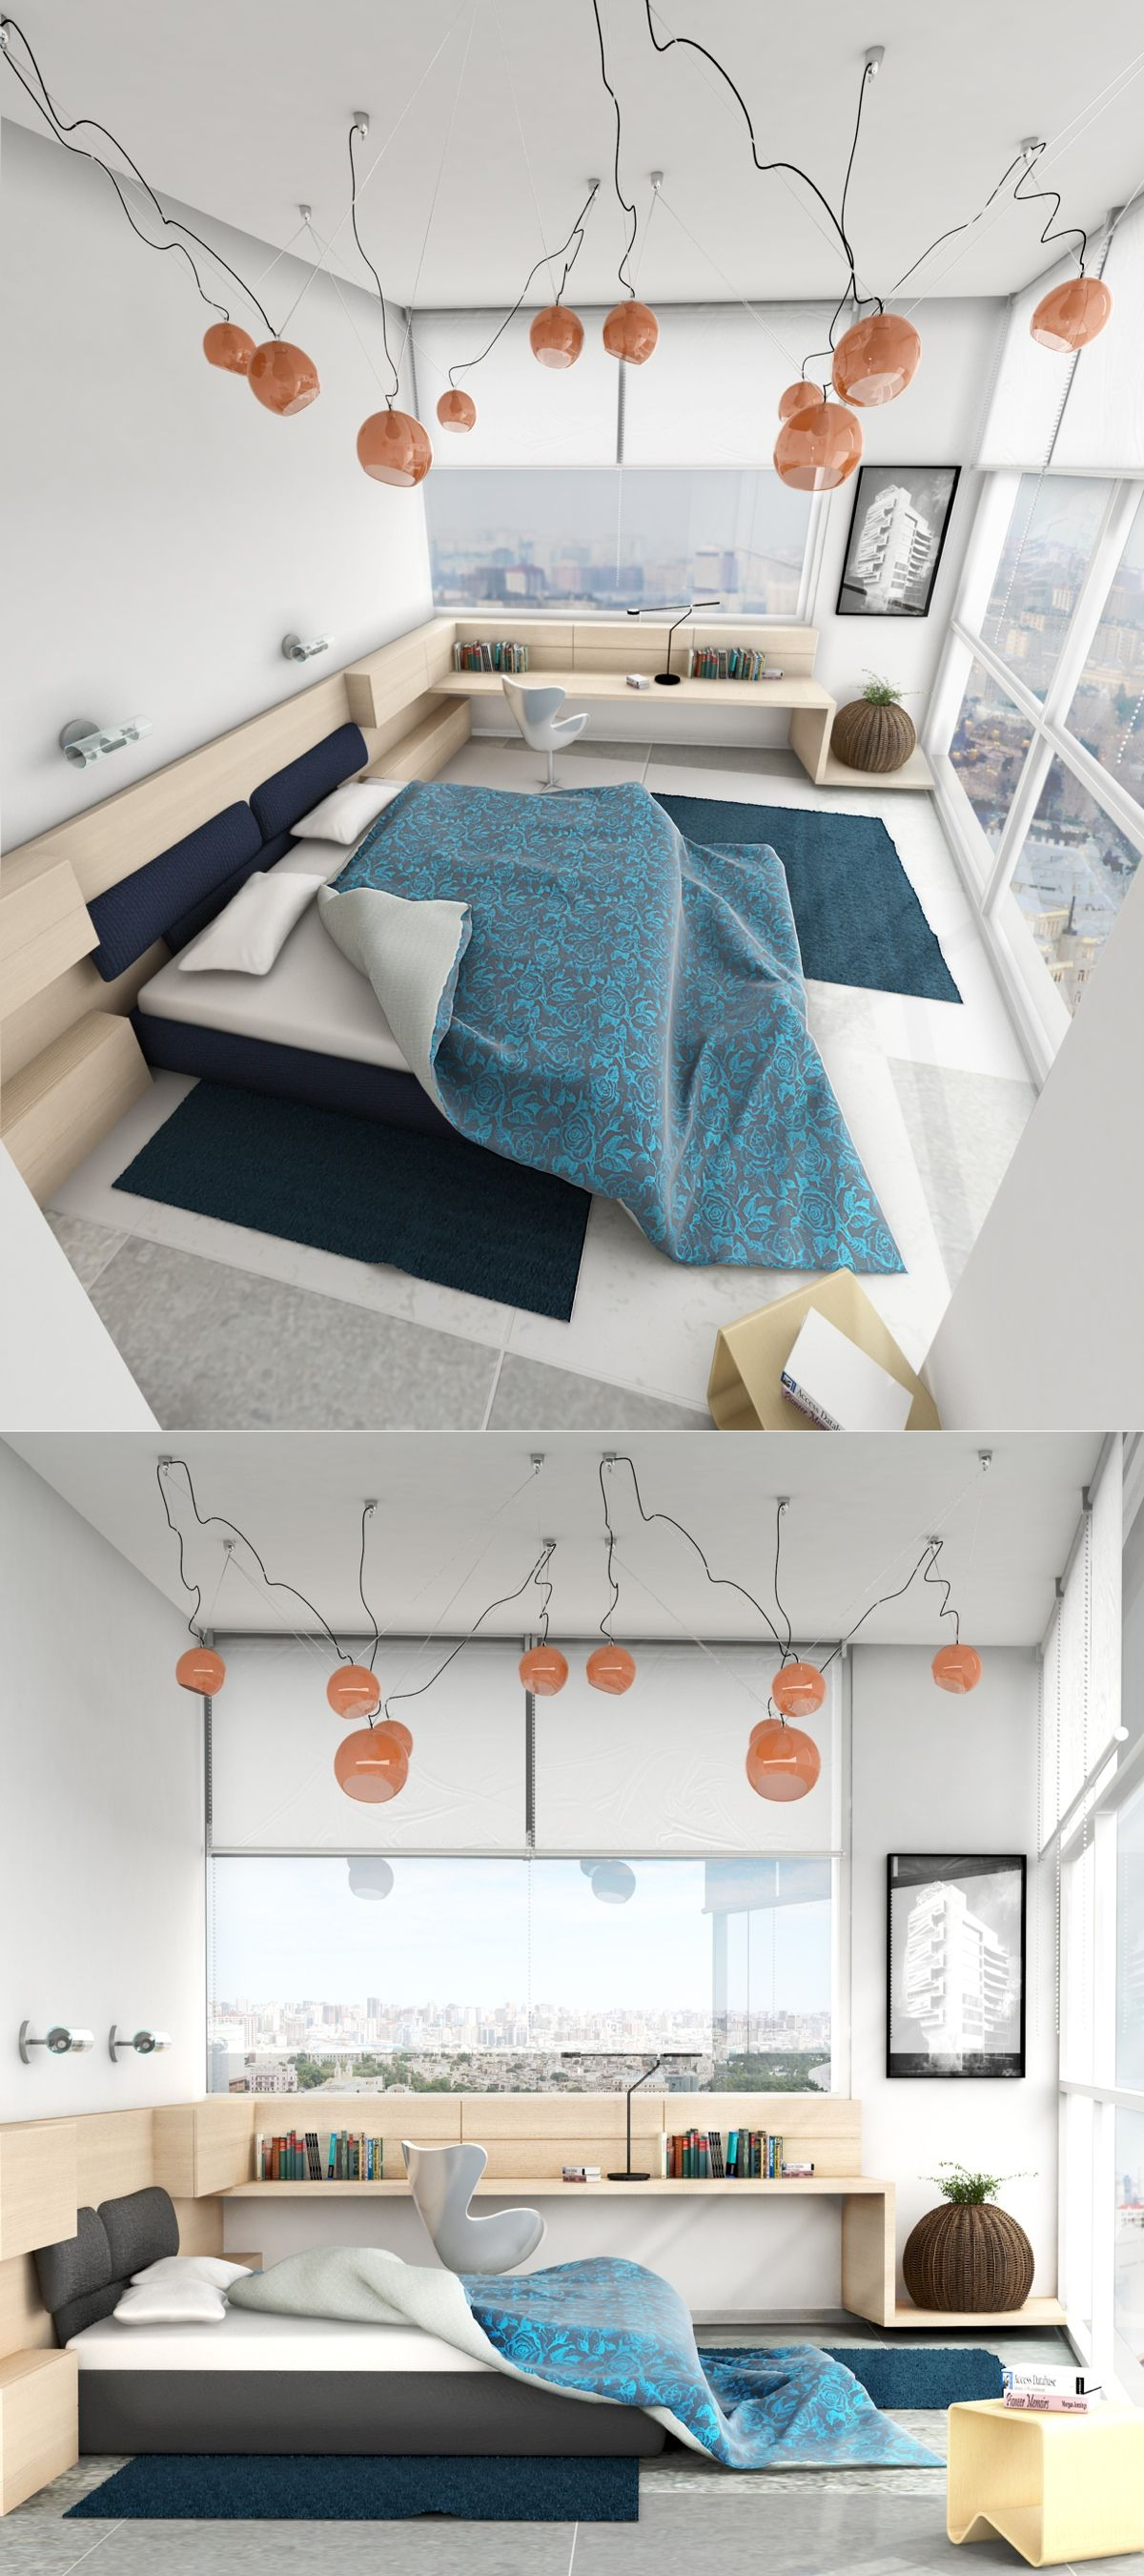 21 Cool Bedrooms For Clean And Simple Design Inspiration Heavenly